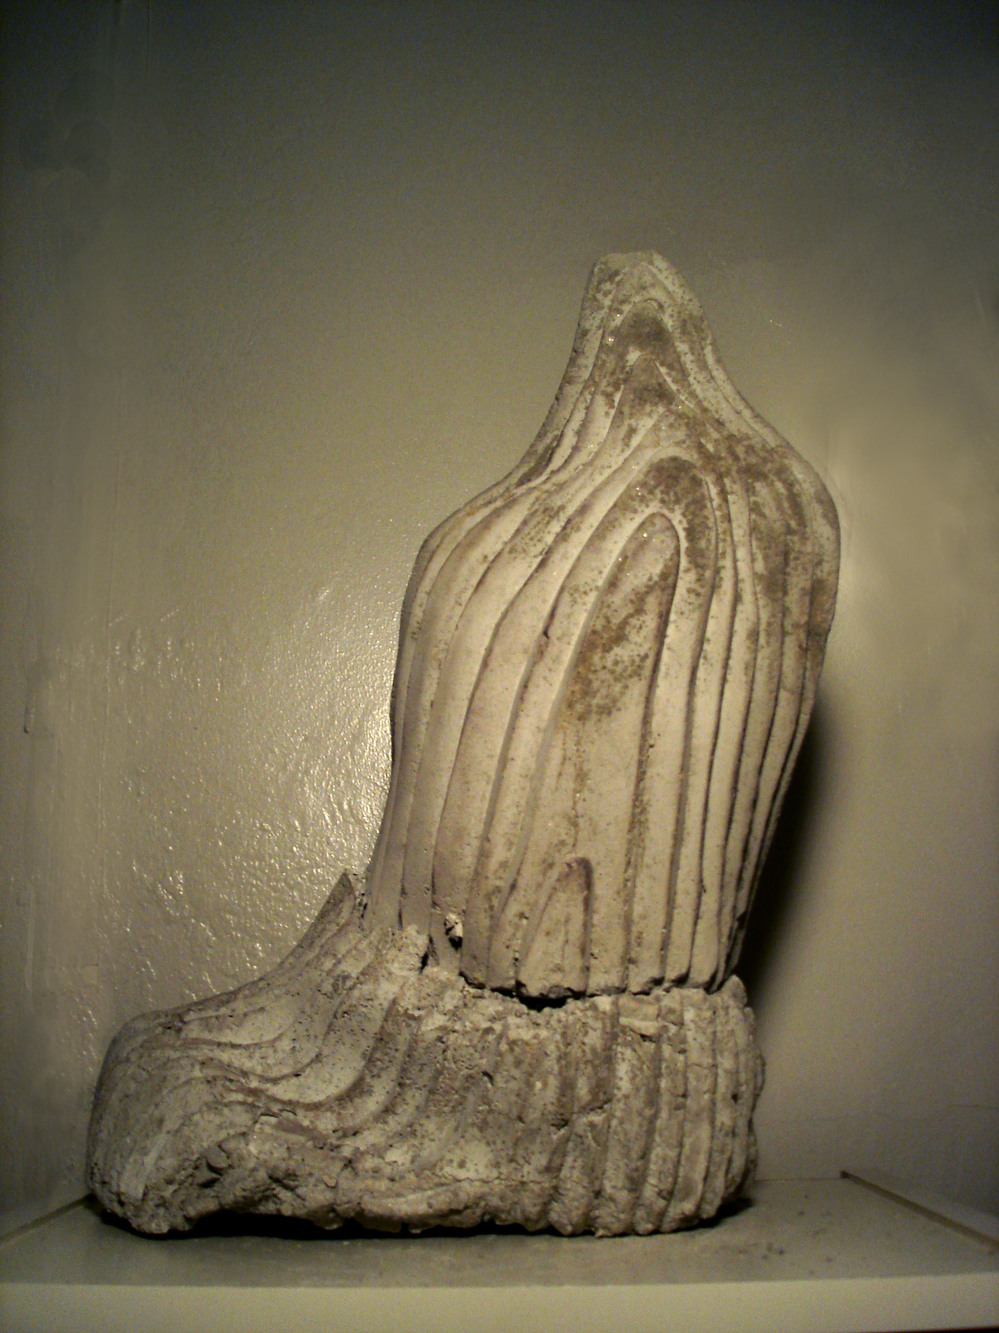 STUDIO Mortar Cast Stalactite, 2008